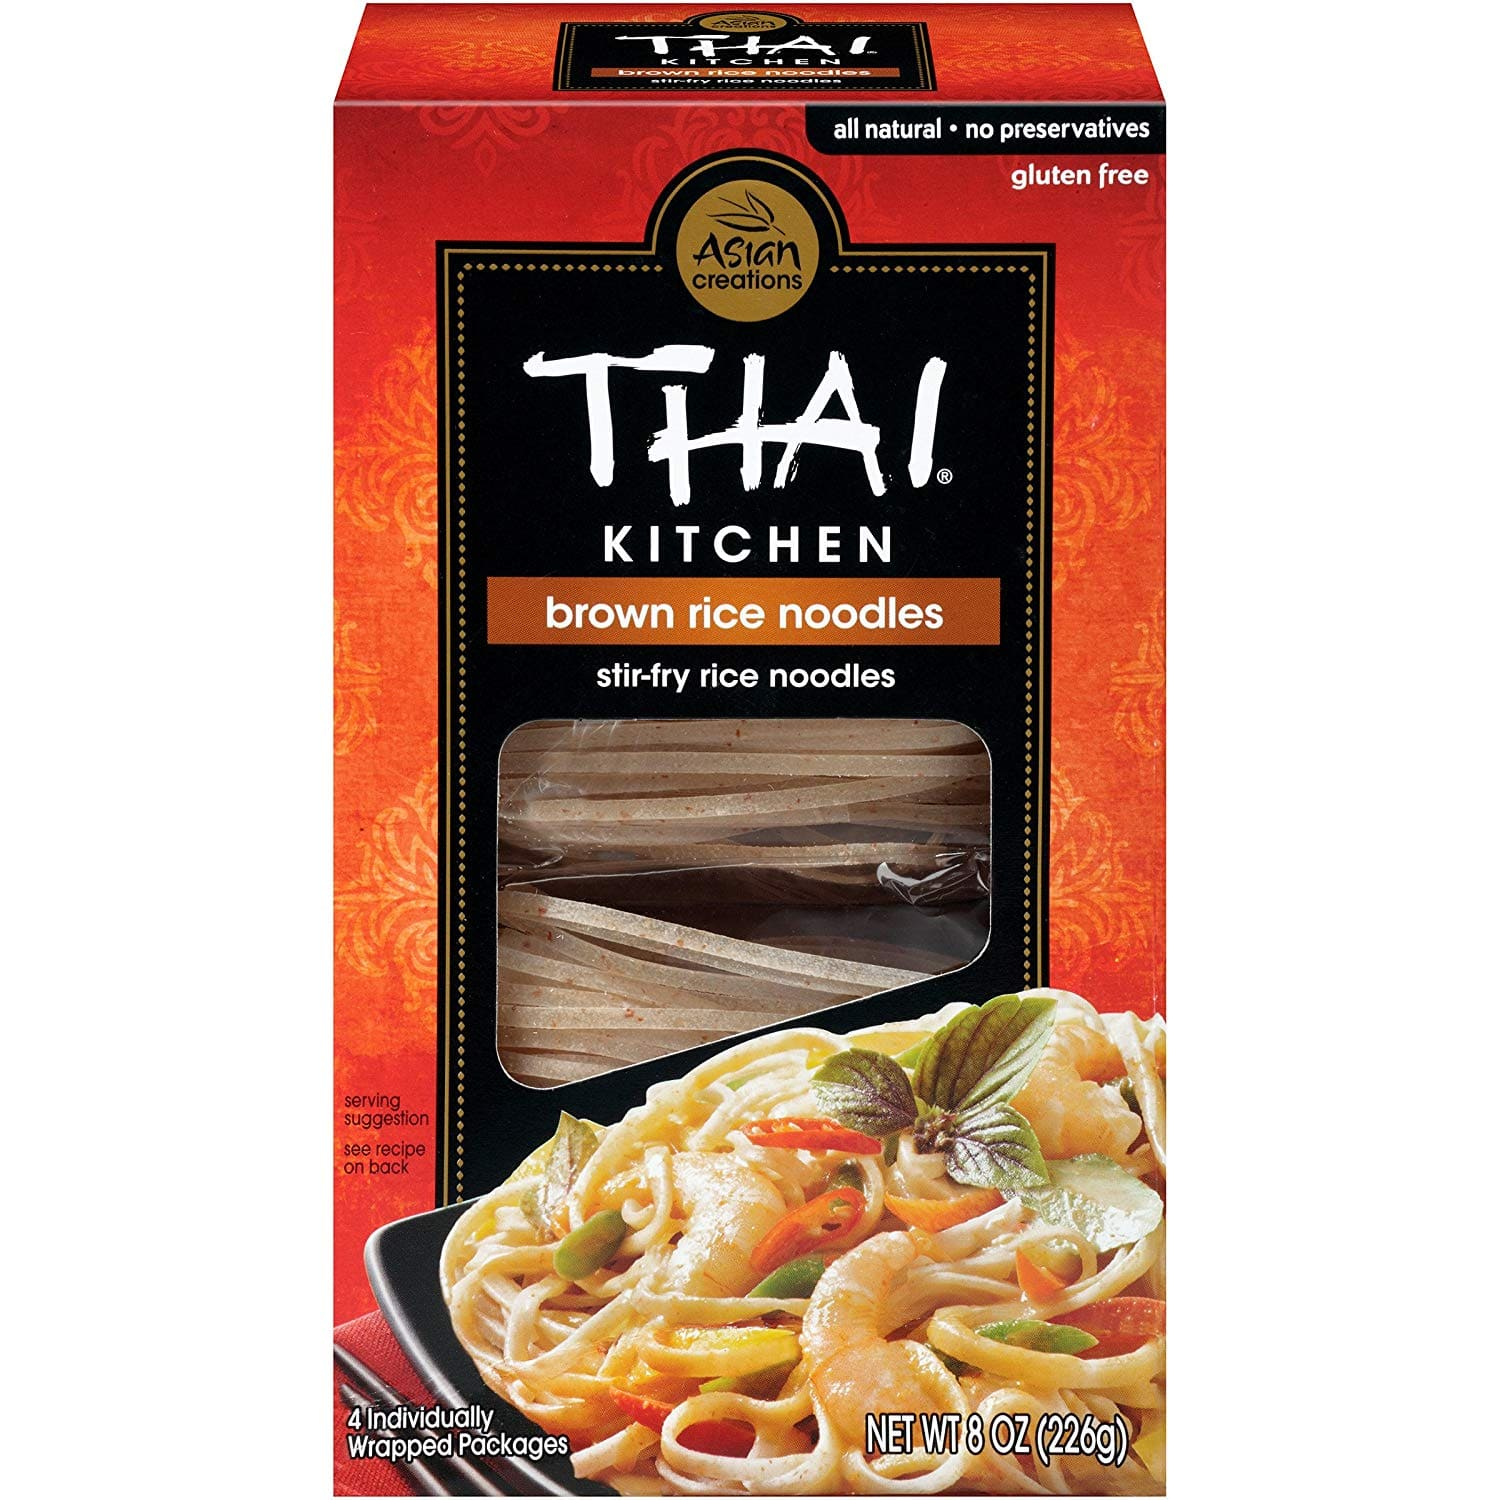 6-Pack 8-Ounce Thai Kitchen Gluten Free Brown Rice Noodles $1.93 w/ S&S